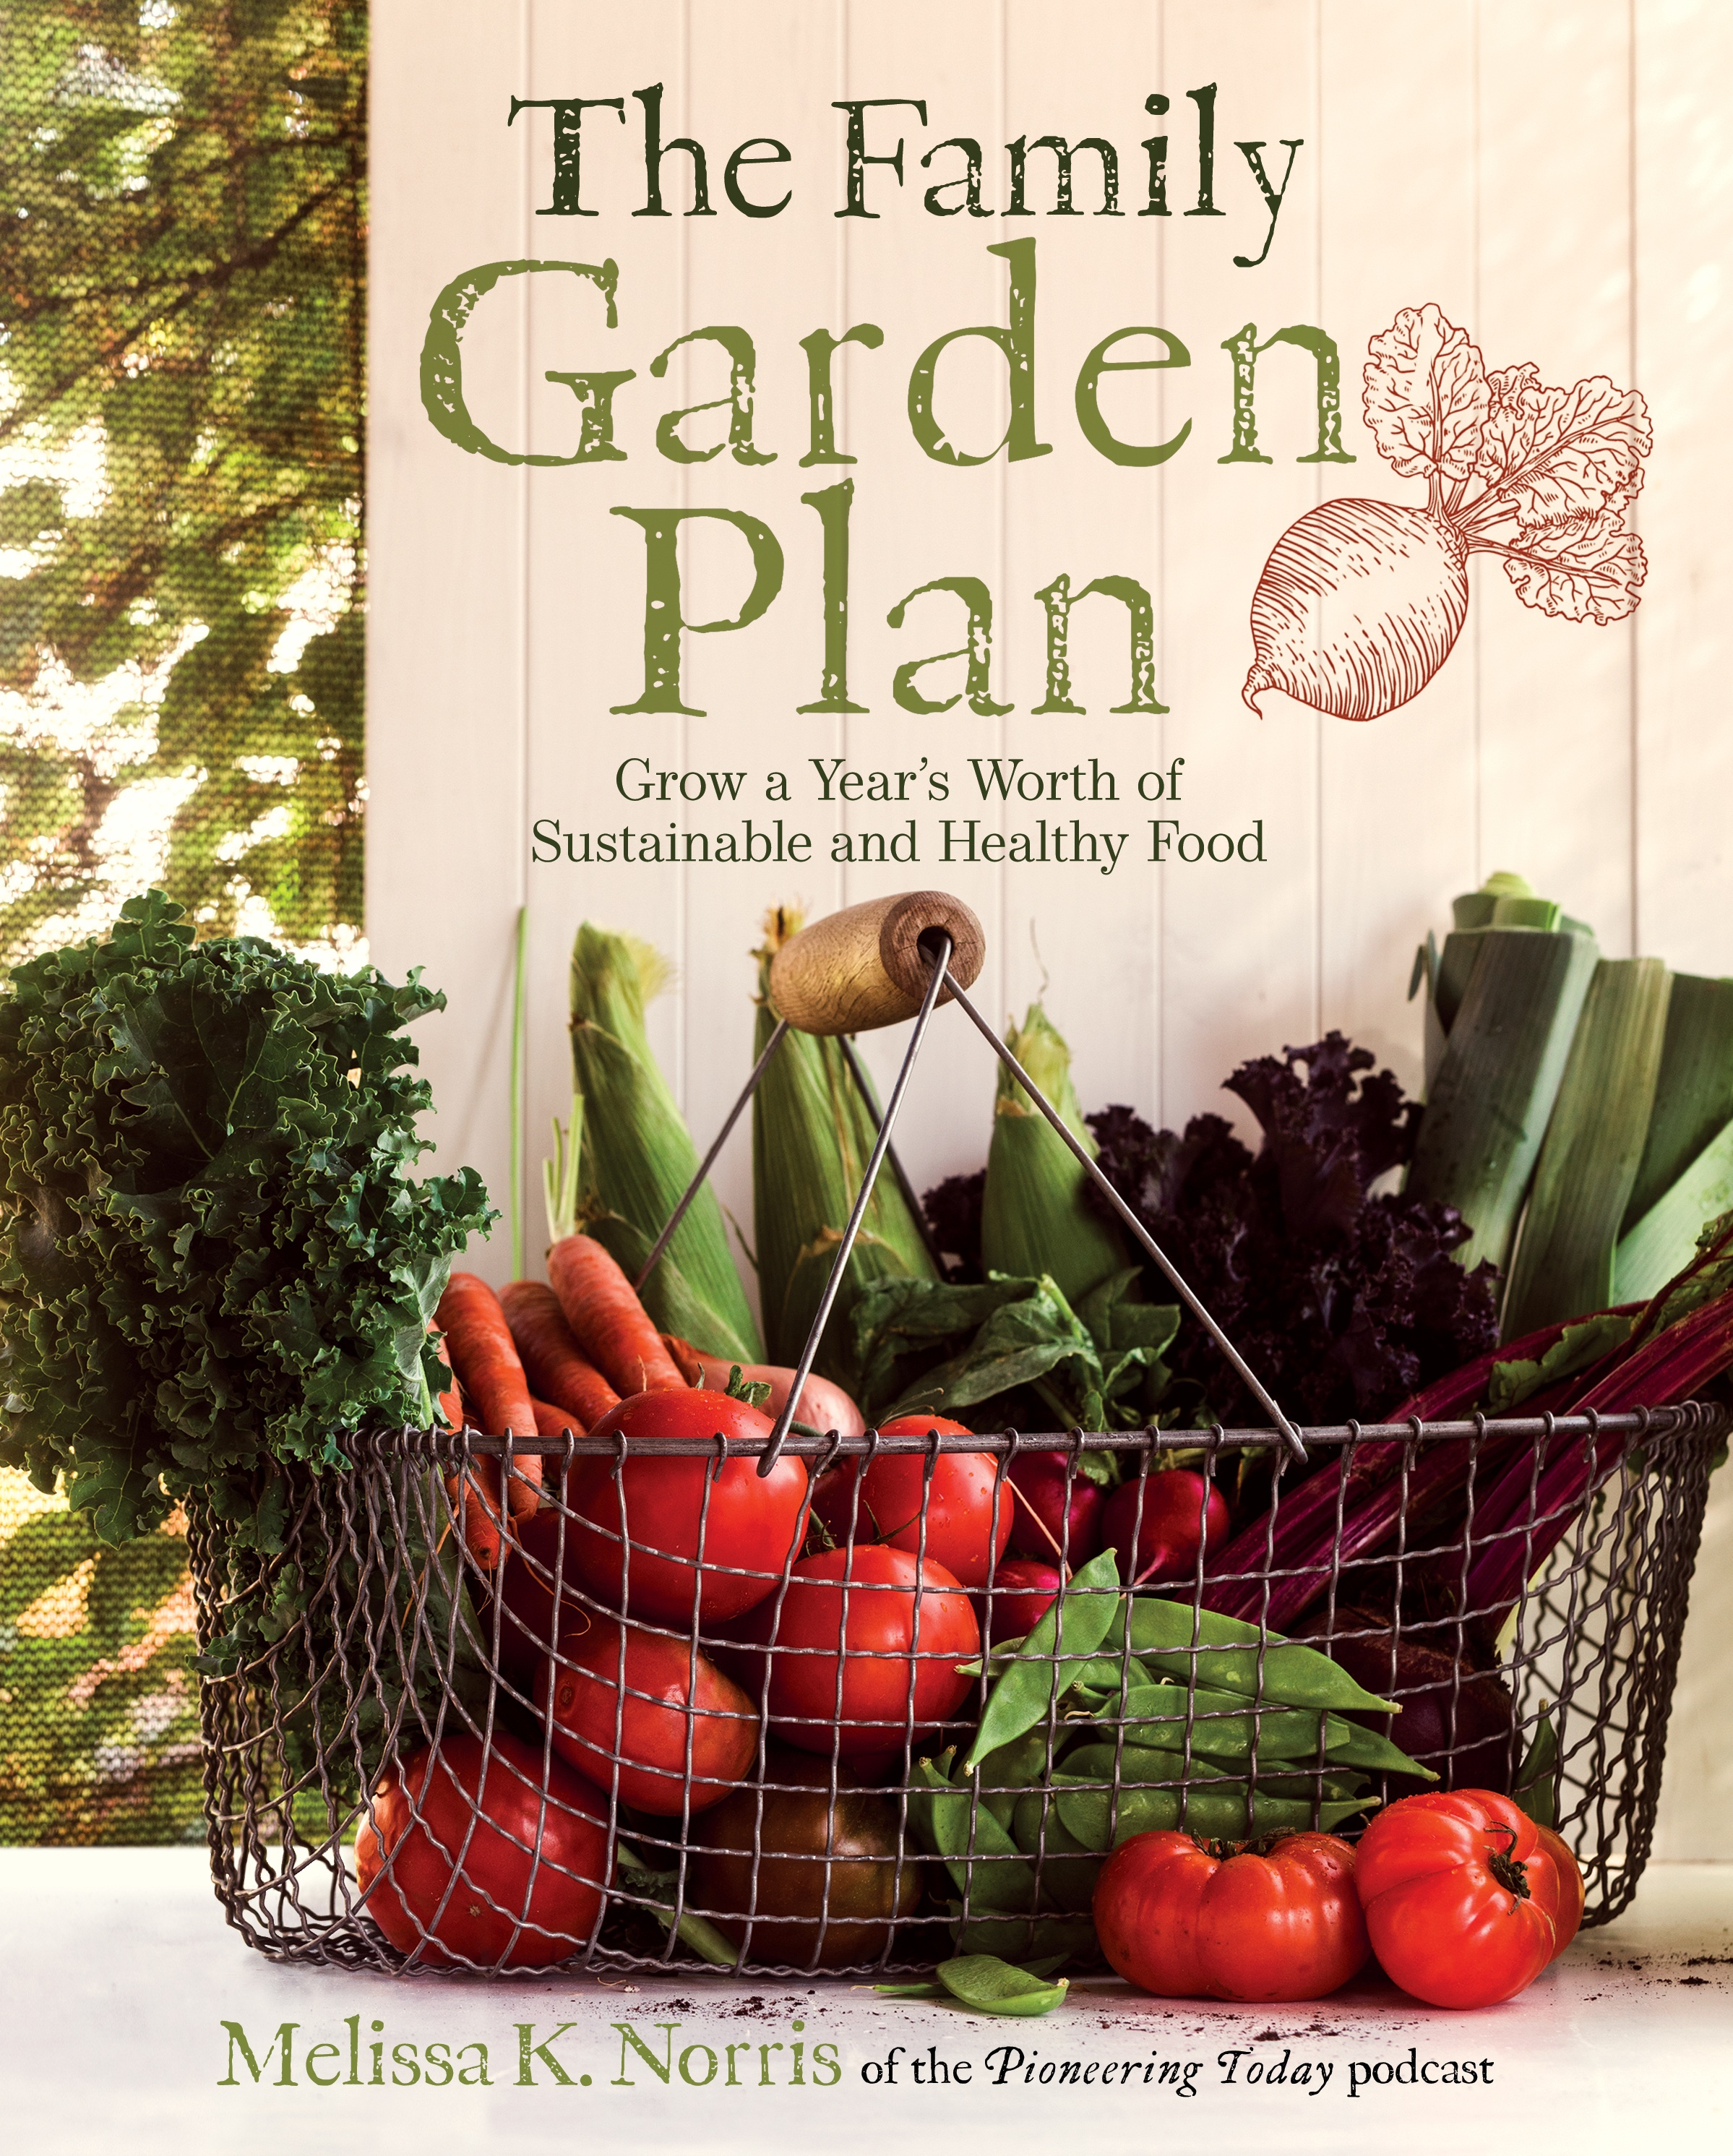 The Family Garden Plan Book By Melissa K. Norris With